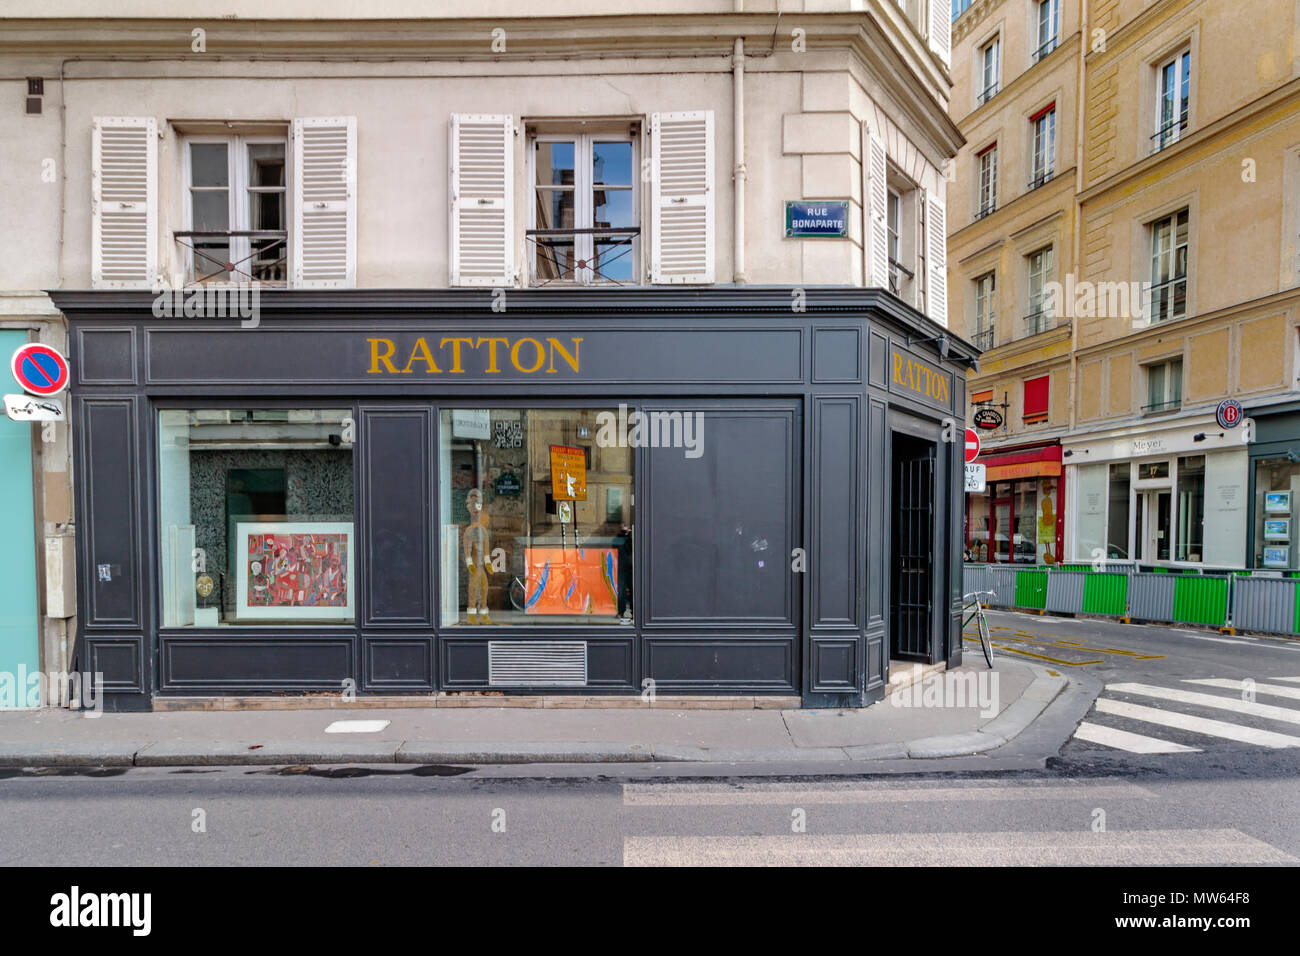 Galerie Ratton on Rue Bonaparte in the 6th arrondissement district of Paris,France - Stock Image